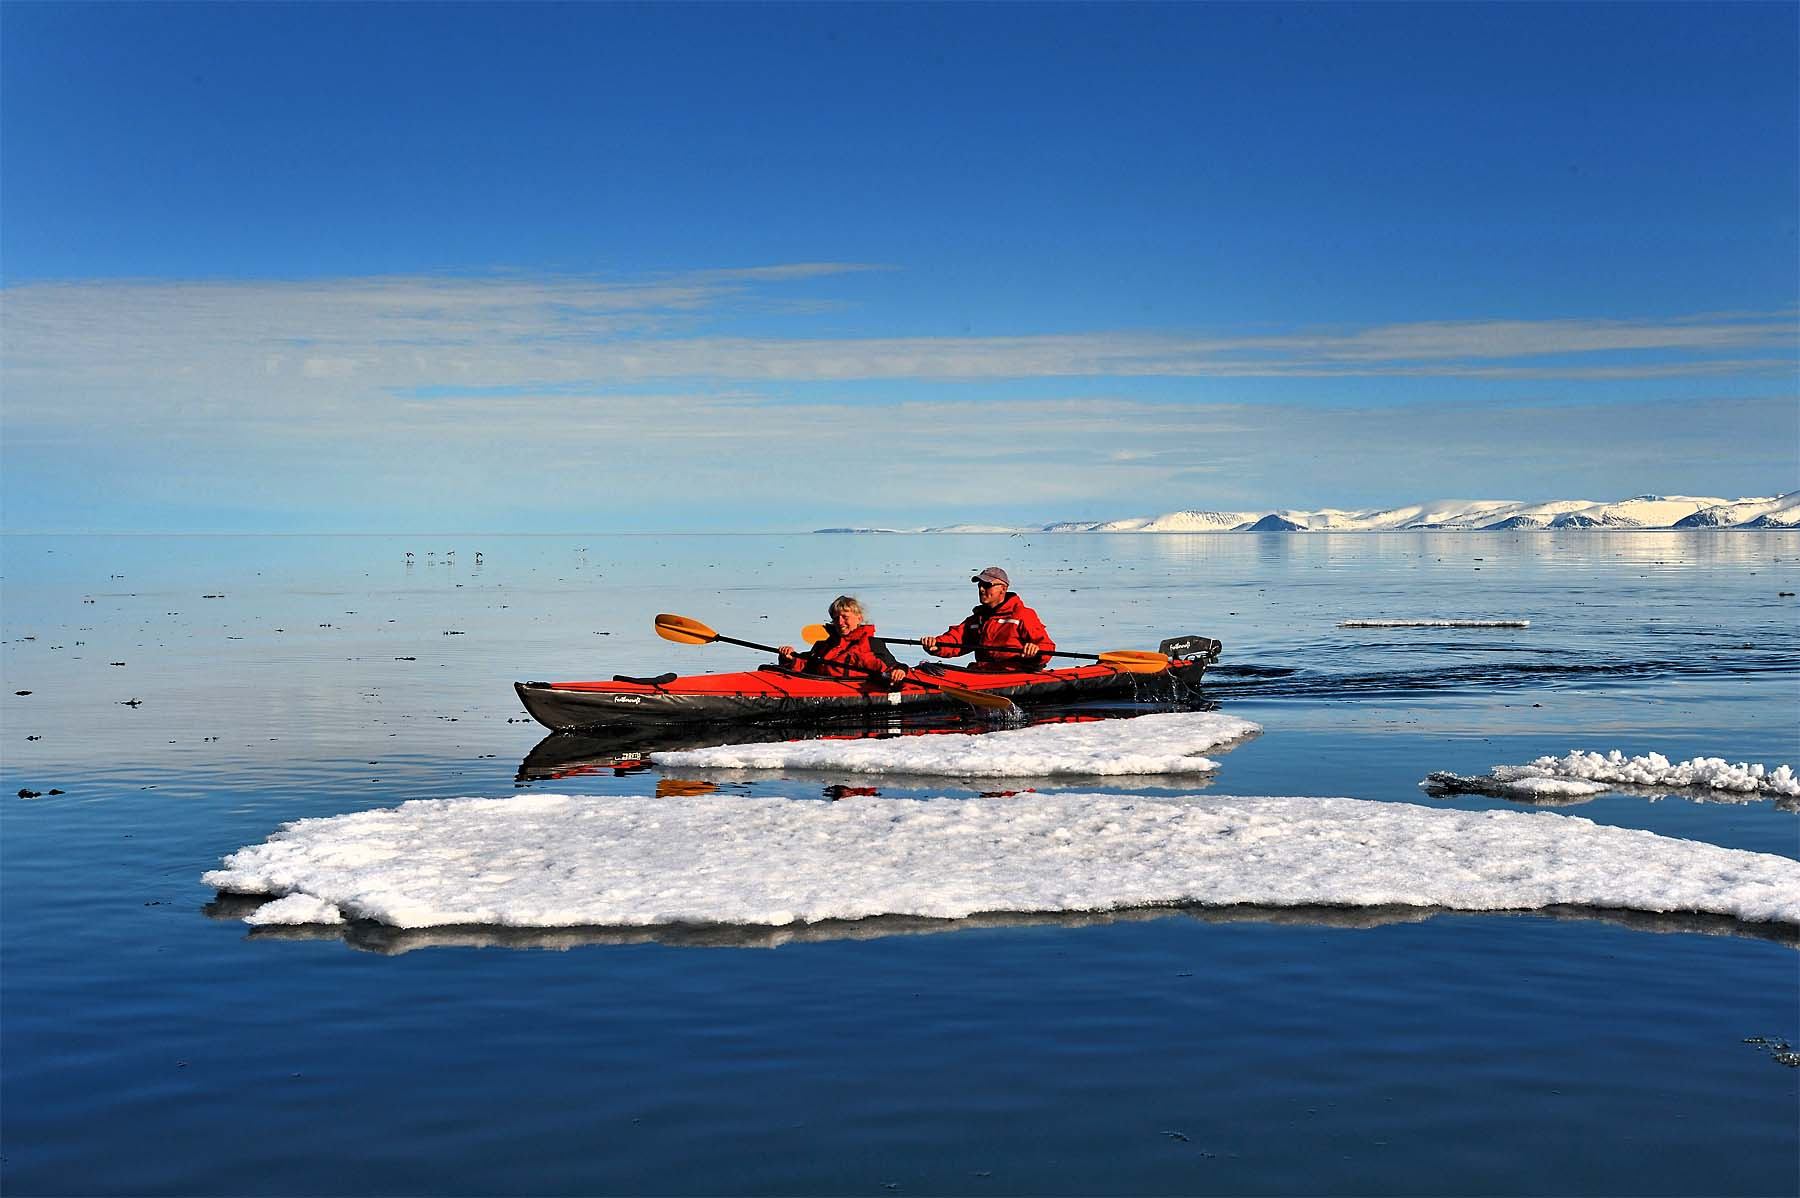 Polarsea Adventures